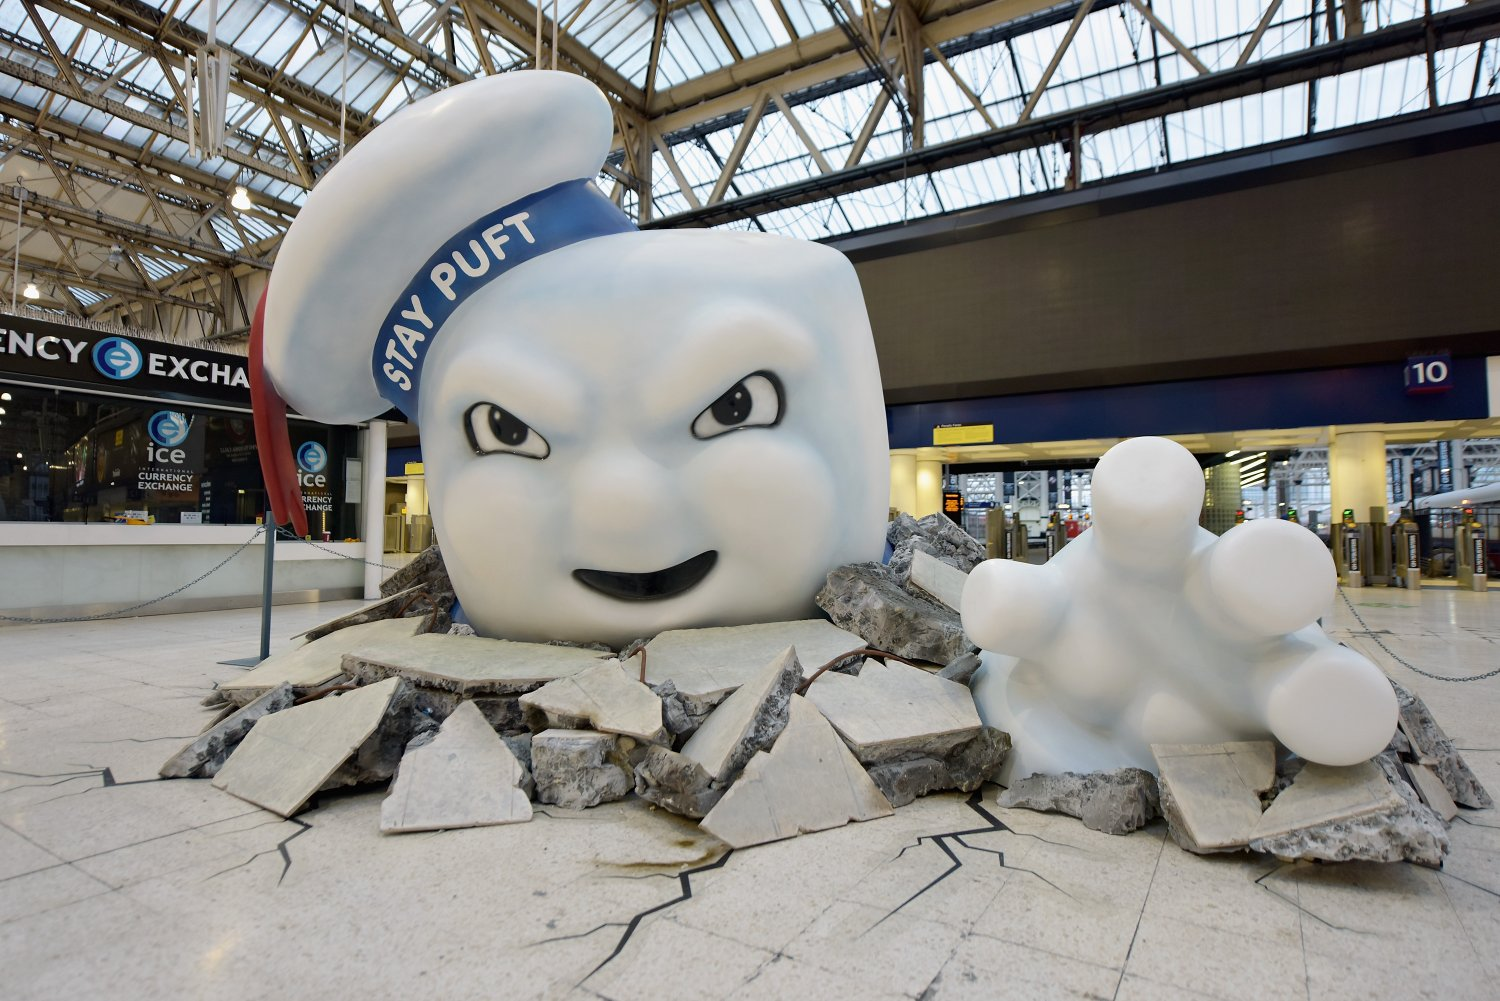 Ghostbusters Waterloo – Stay Puff escape